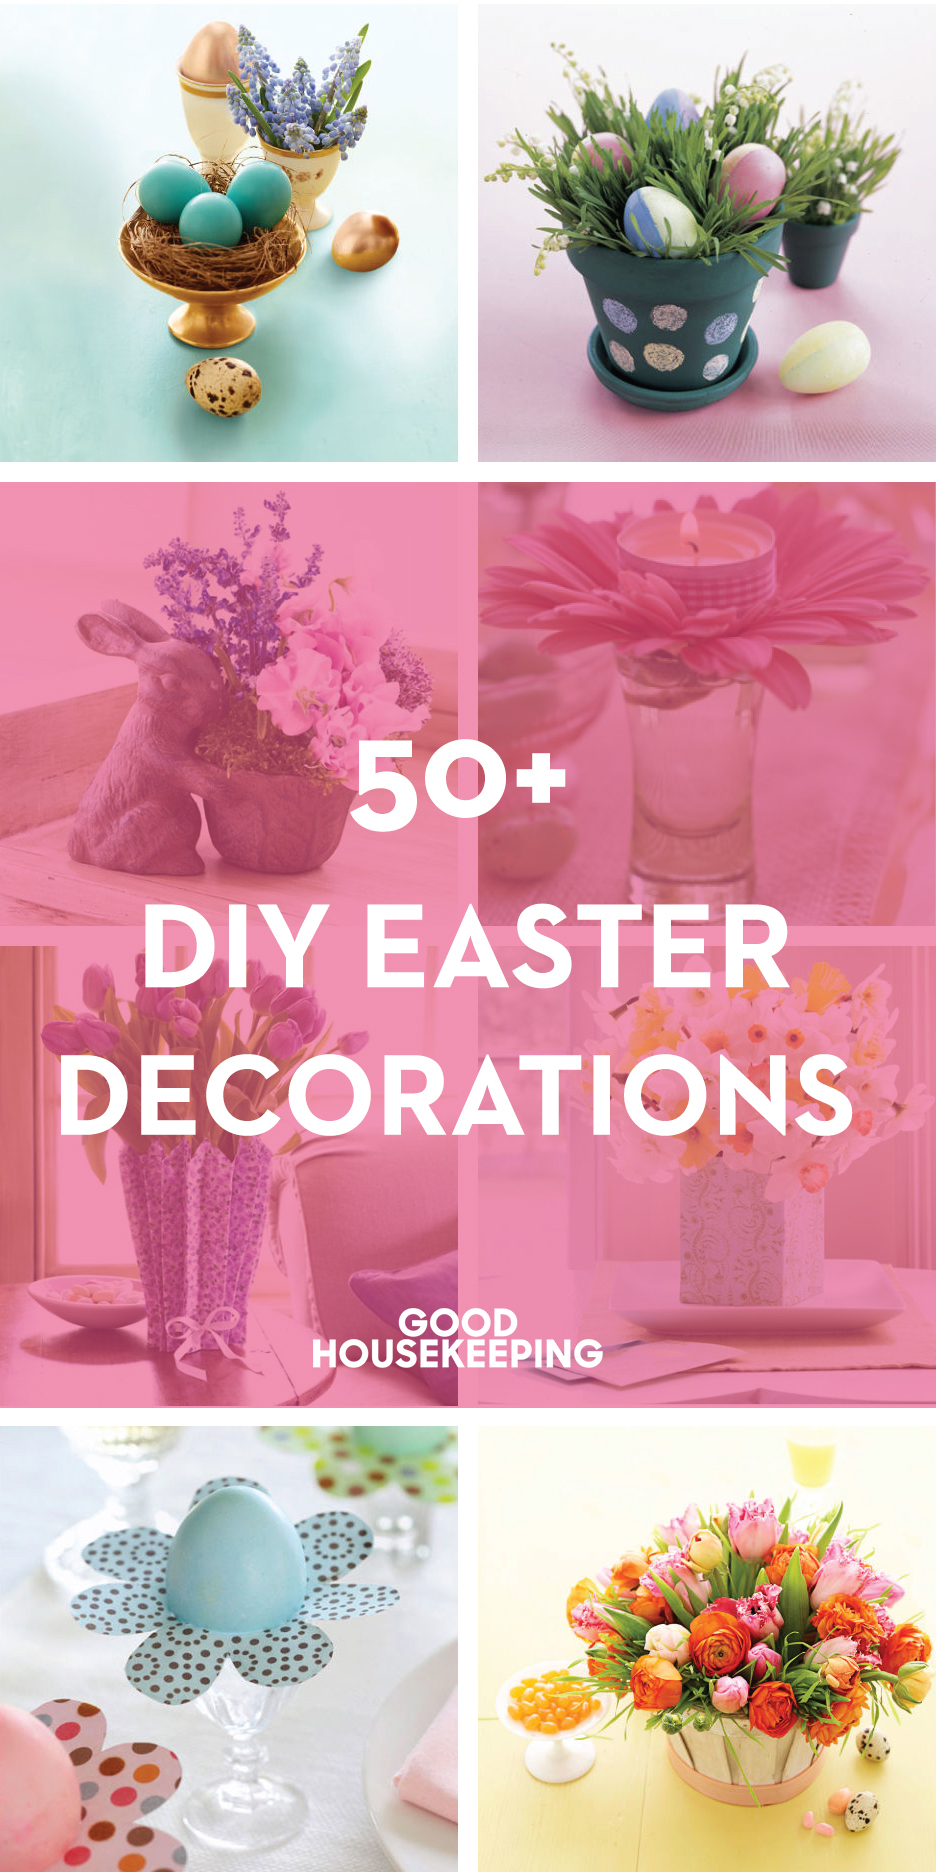 80 diy easter decorations ideas for homemade easter for How to make easter decorations for the home